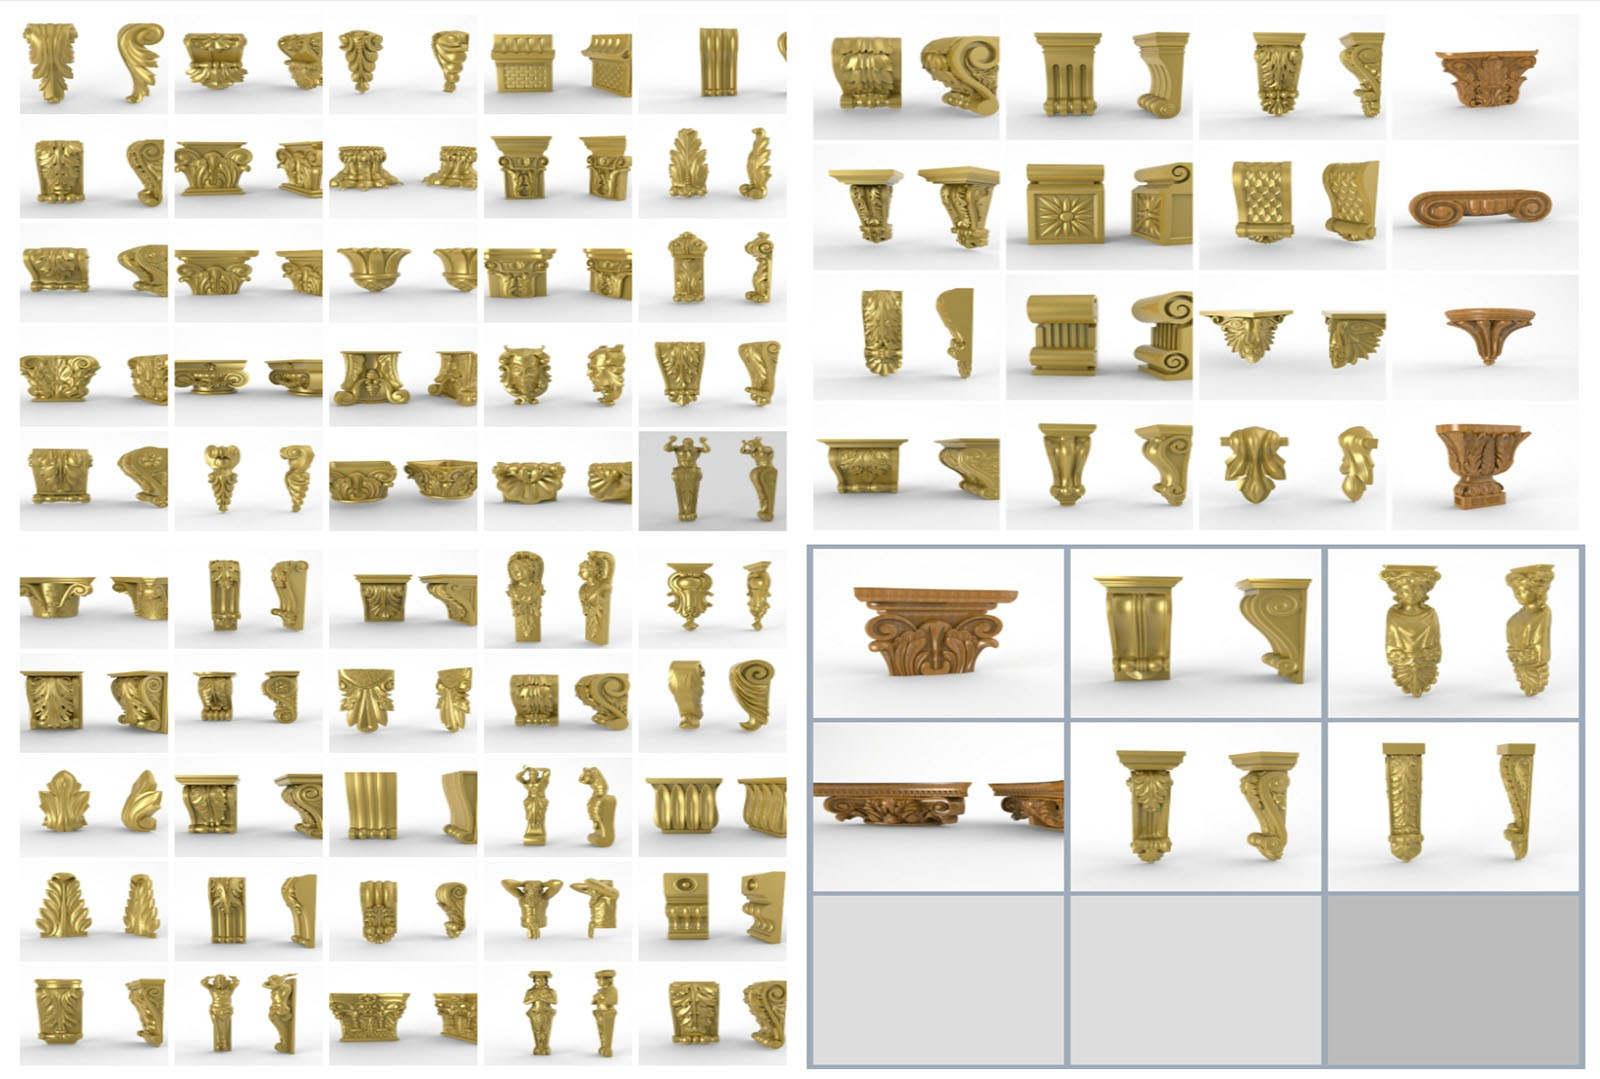 CNC G016 72PC Brackets Collection 3D STL Model